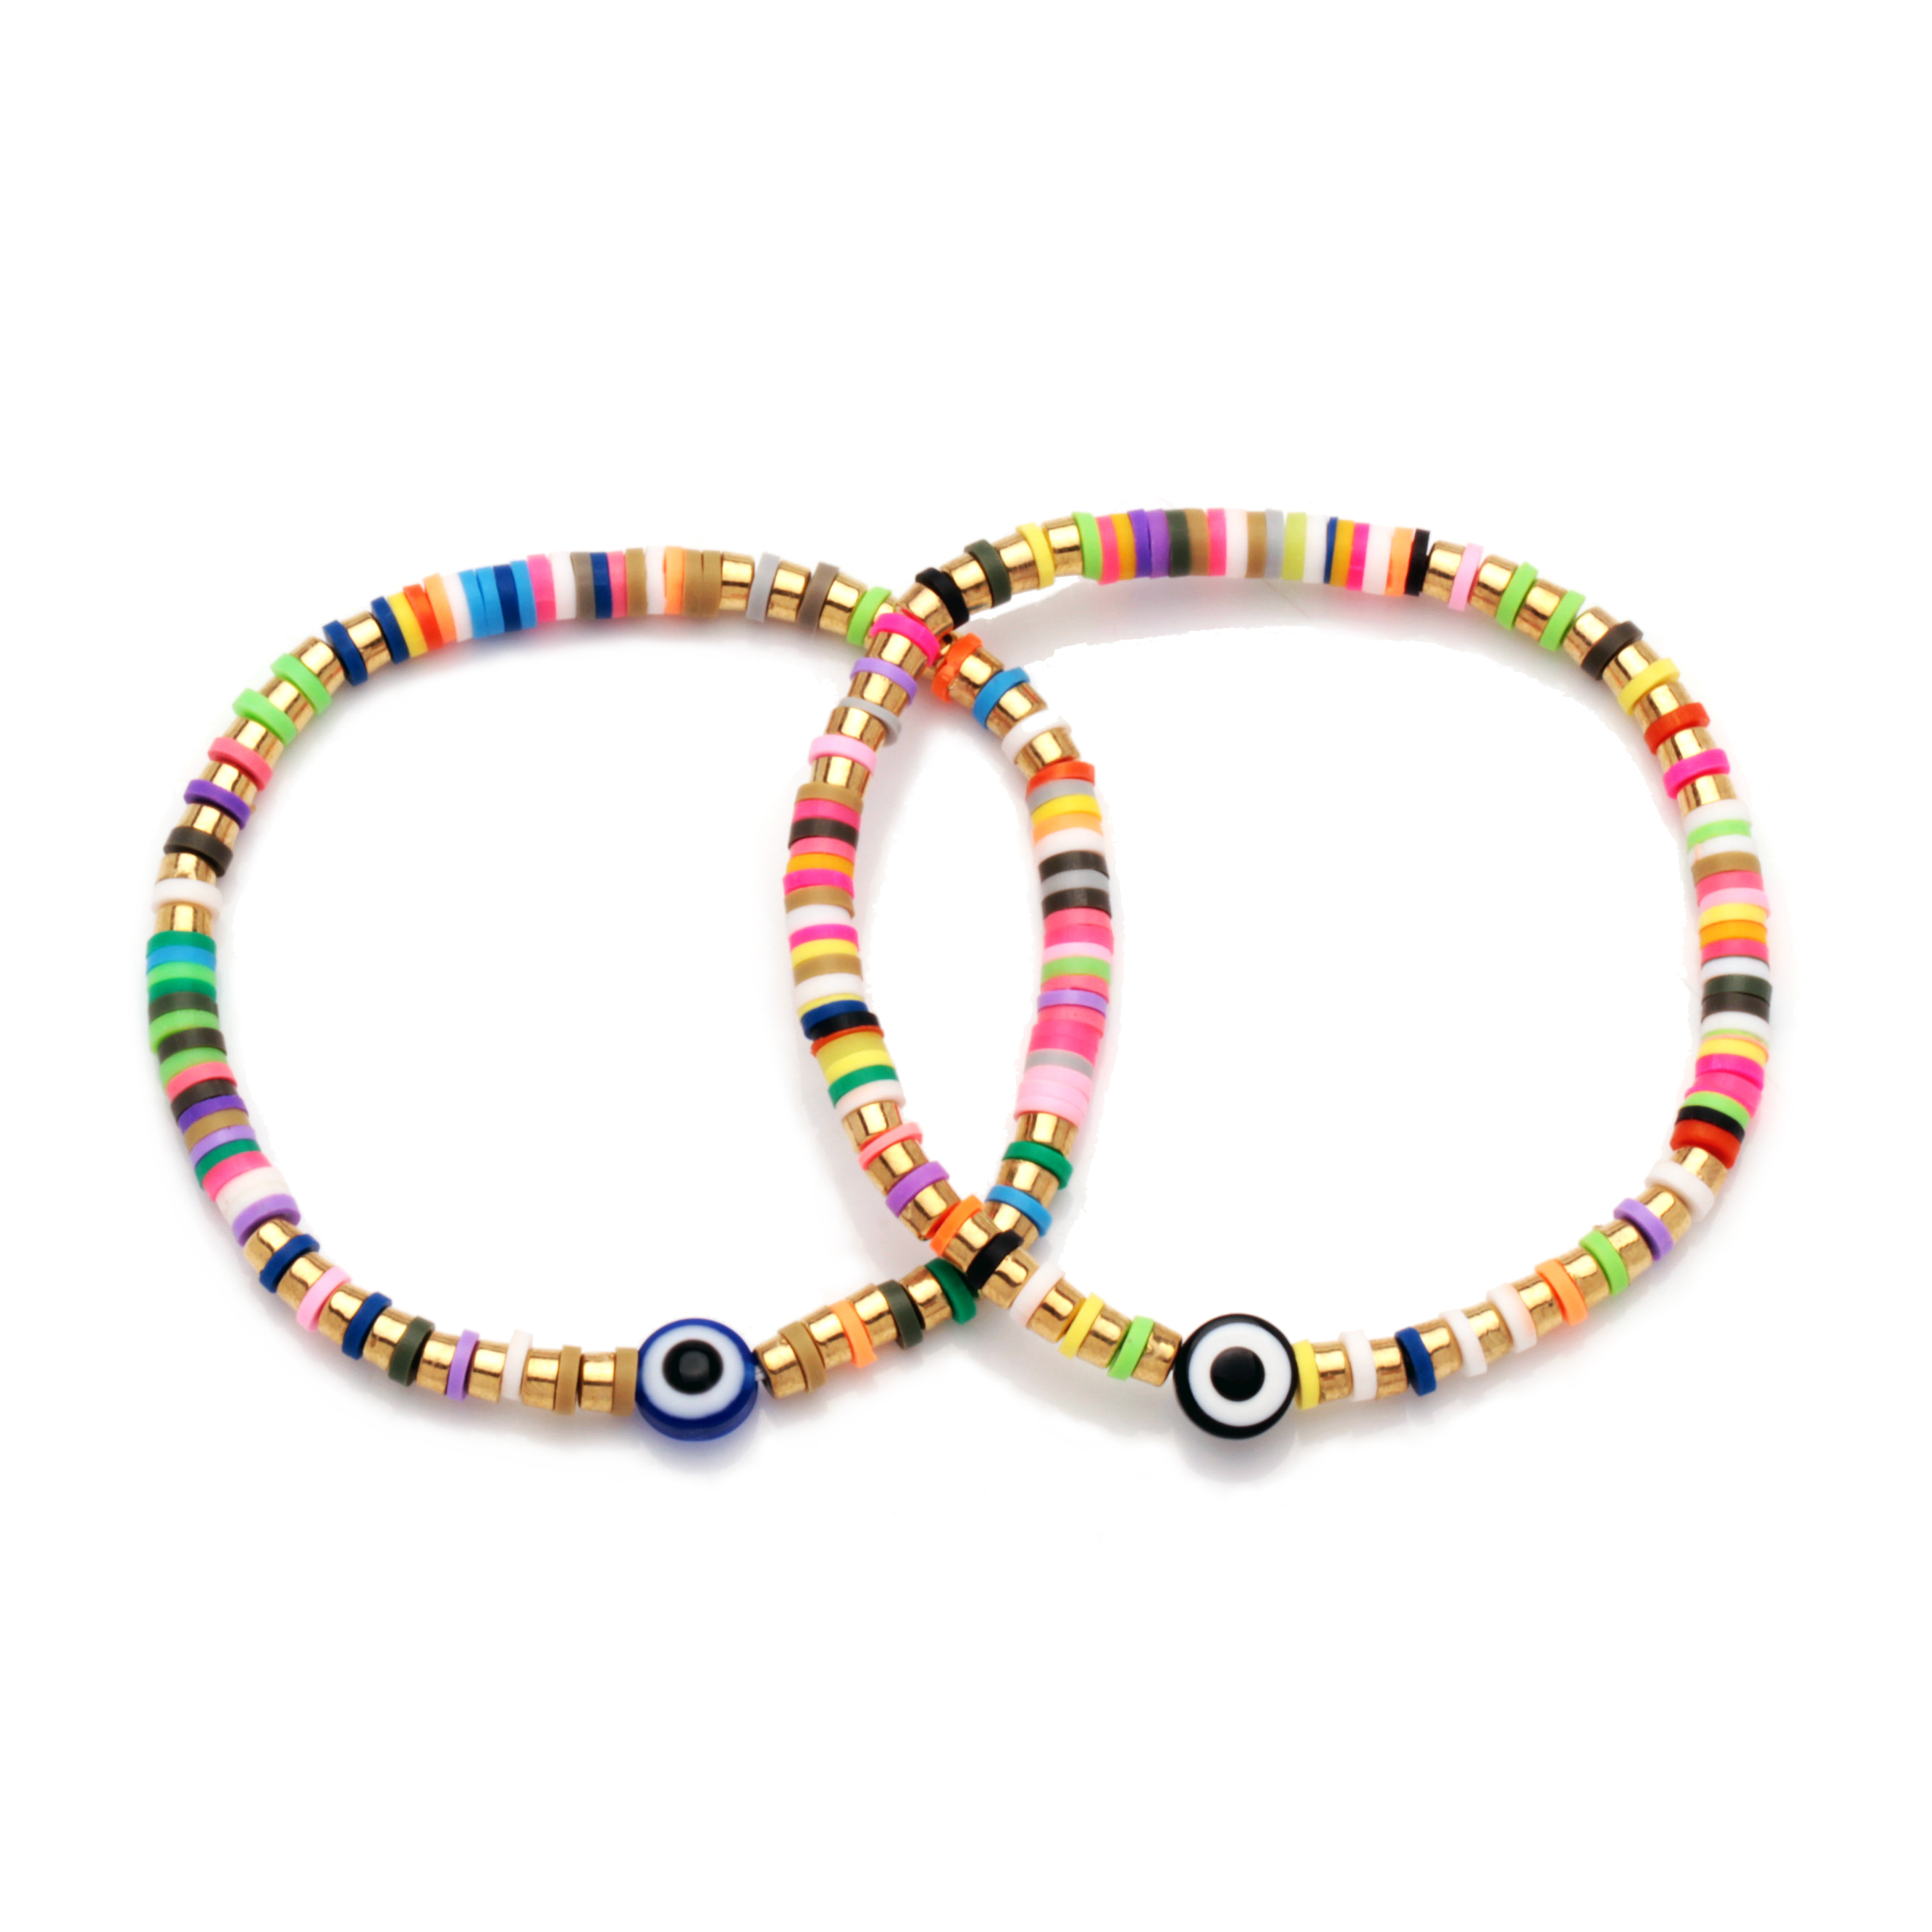 Heishi bead bracelet with accent heishi bead jewelry everyday bracelet for woman gift for Mother\u2019s Day beaded bracelets for women